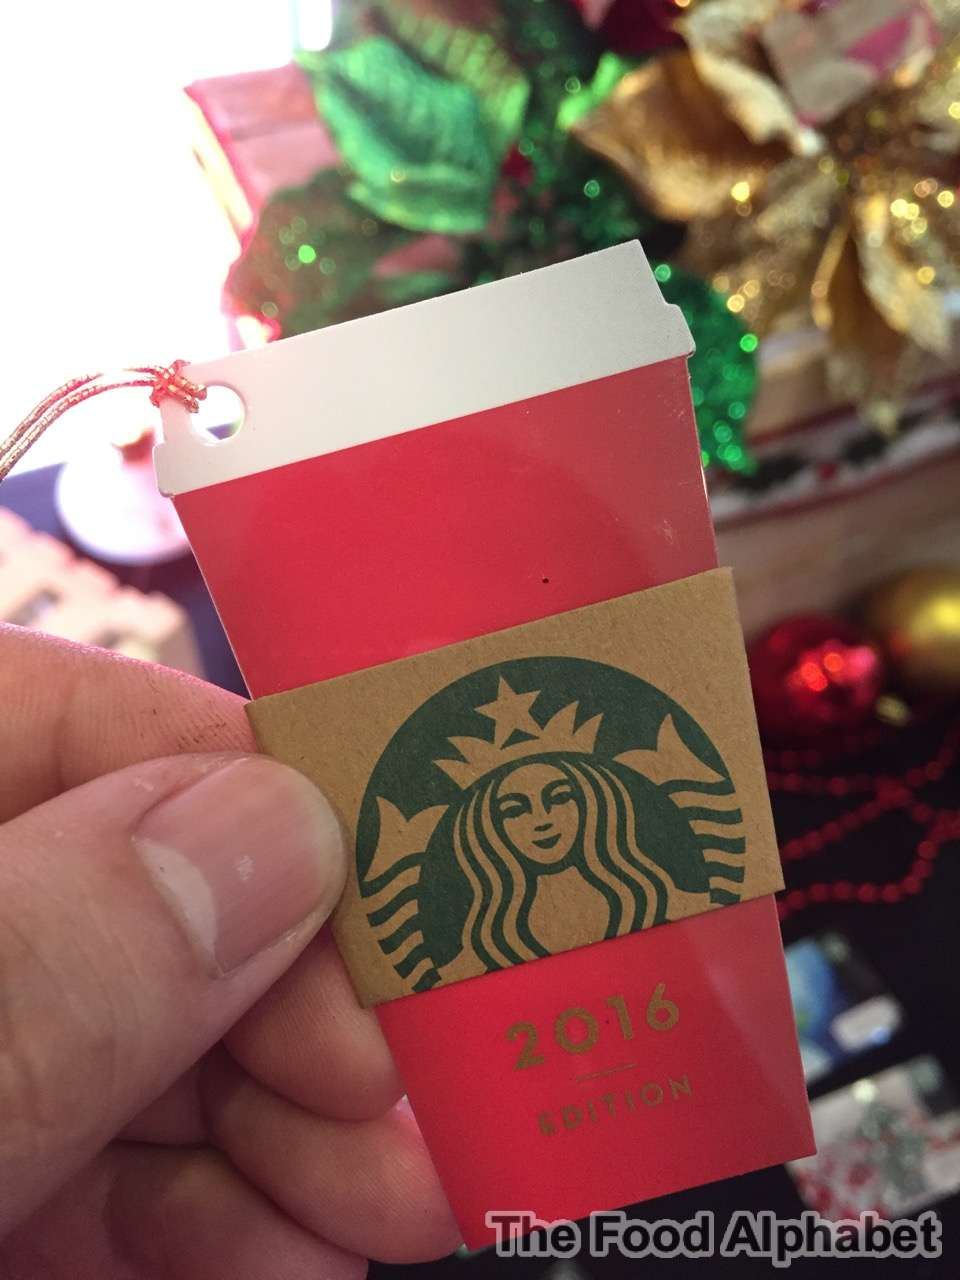 The Food Alphabet And More Attn Starbucks Card